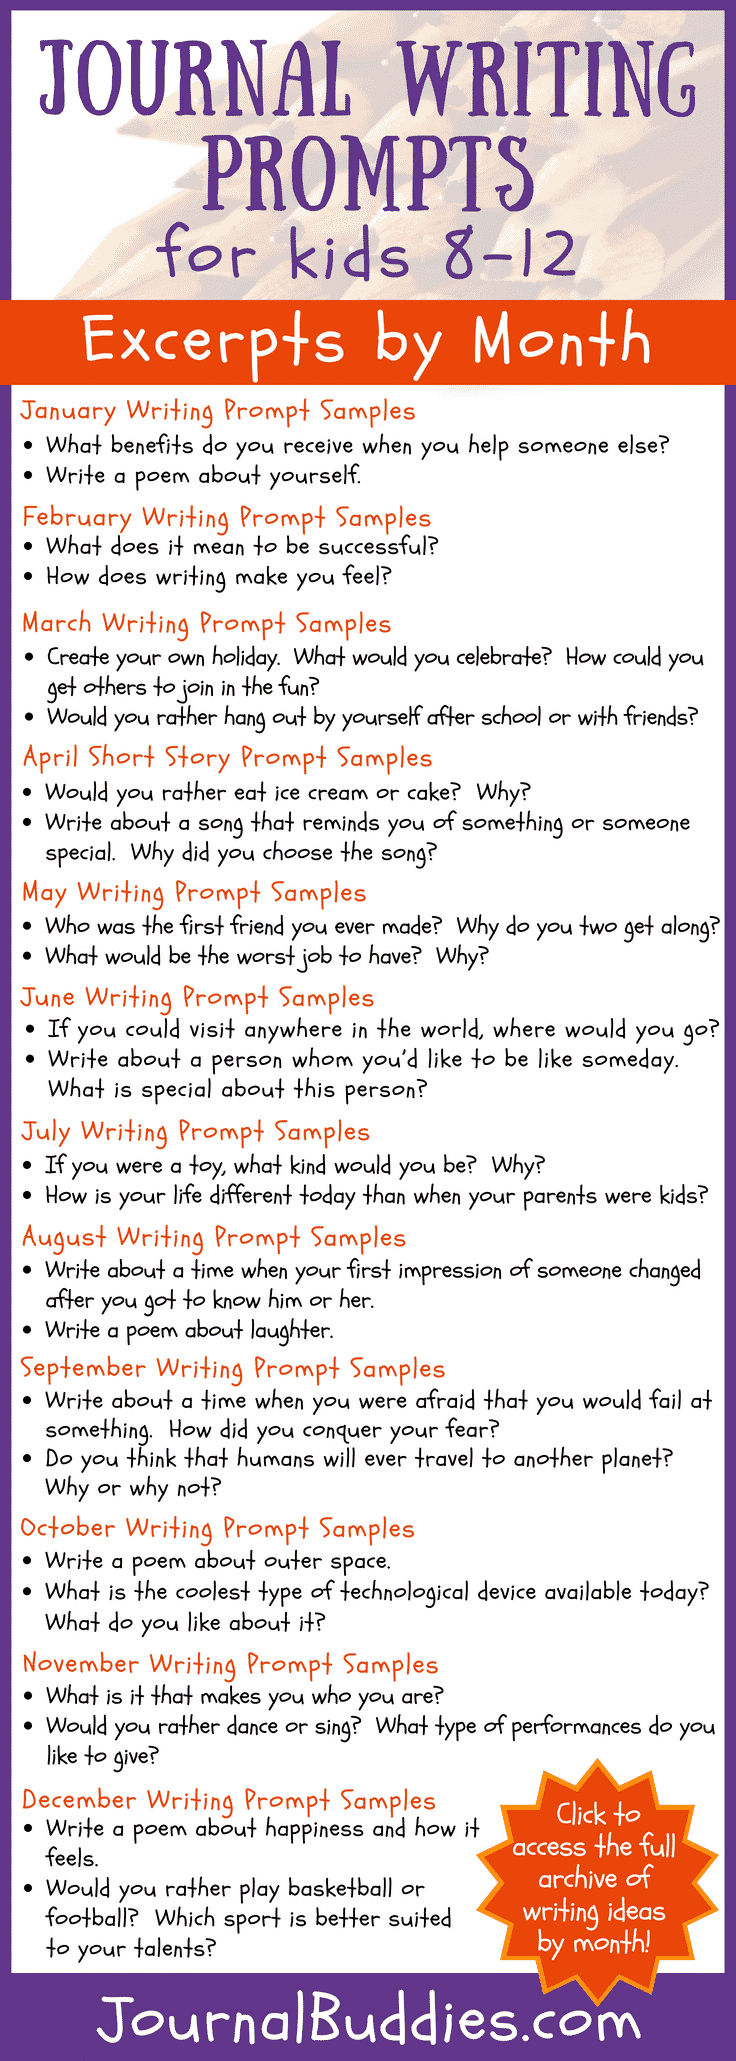 This exciting new list of 365 prompts will take kids through an entire year of fun, reflective journaling!